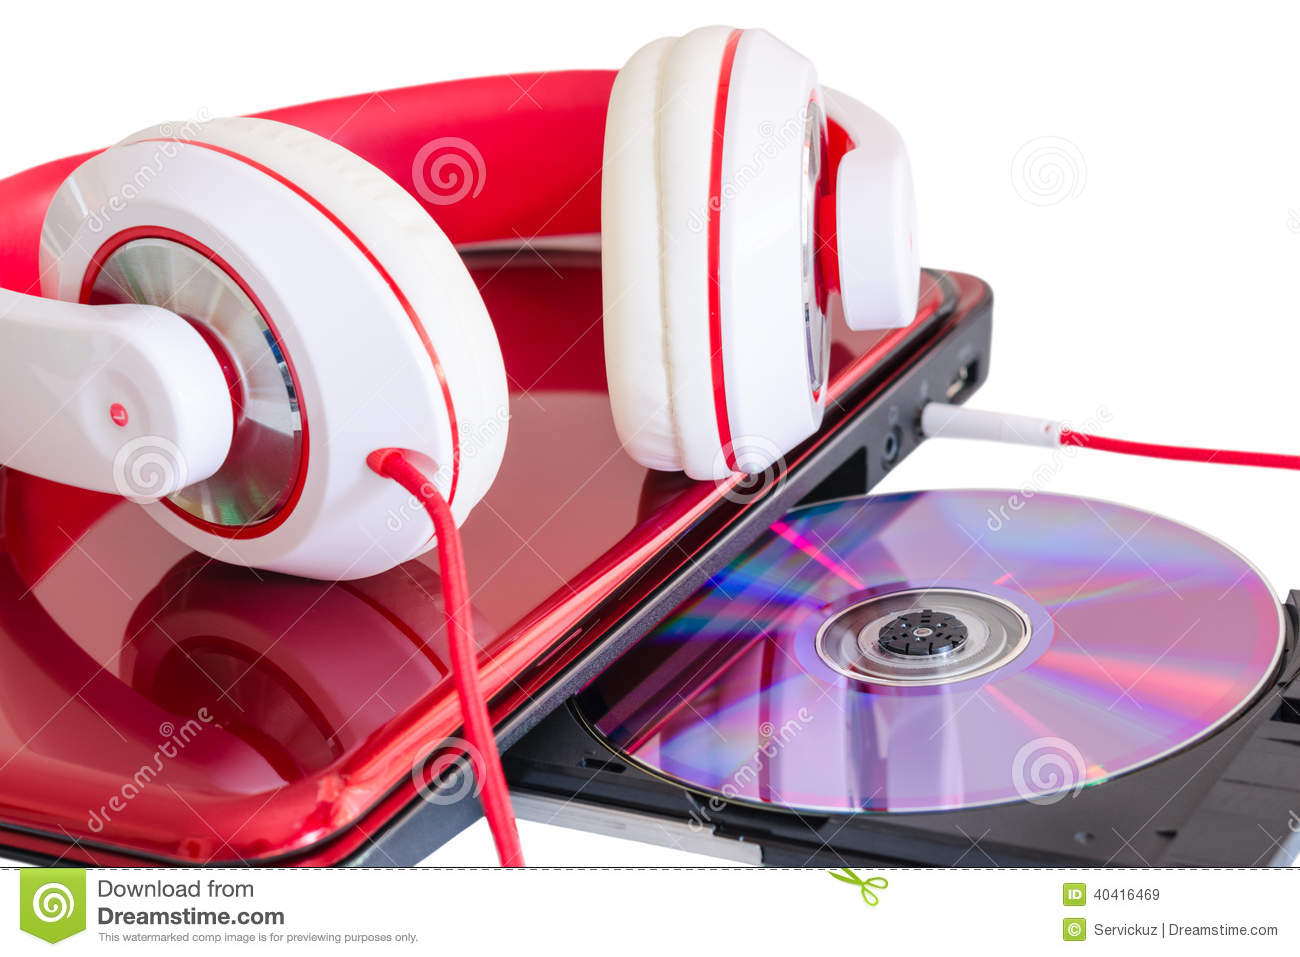 Red headphones and laptop with compact disk